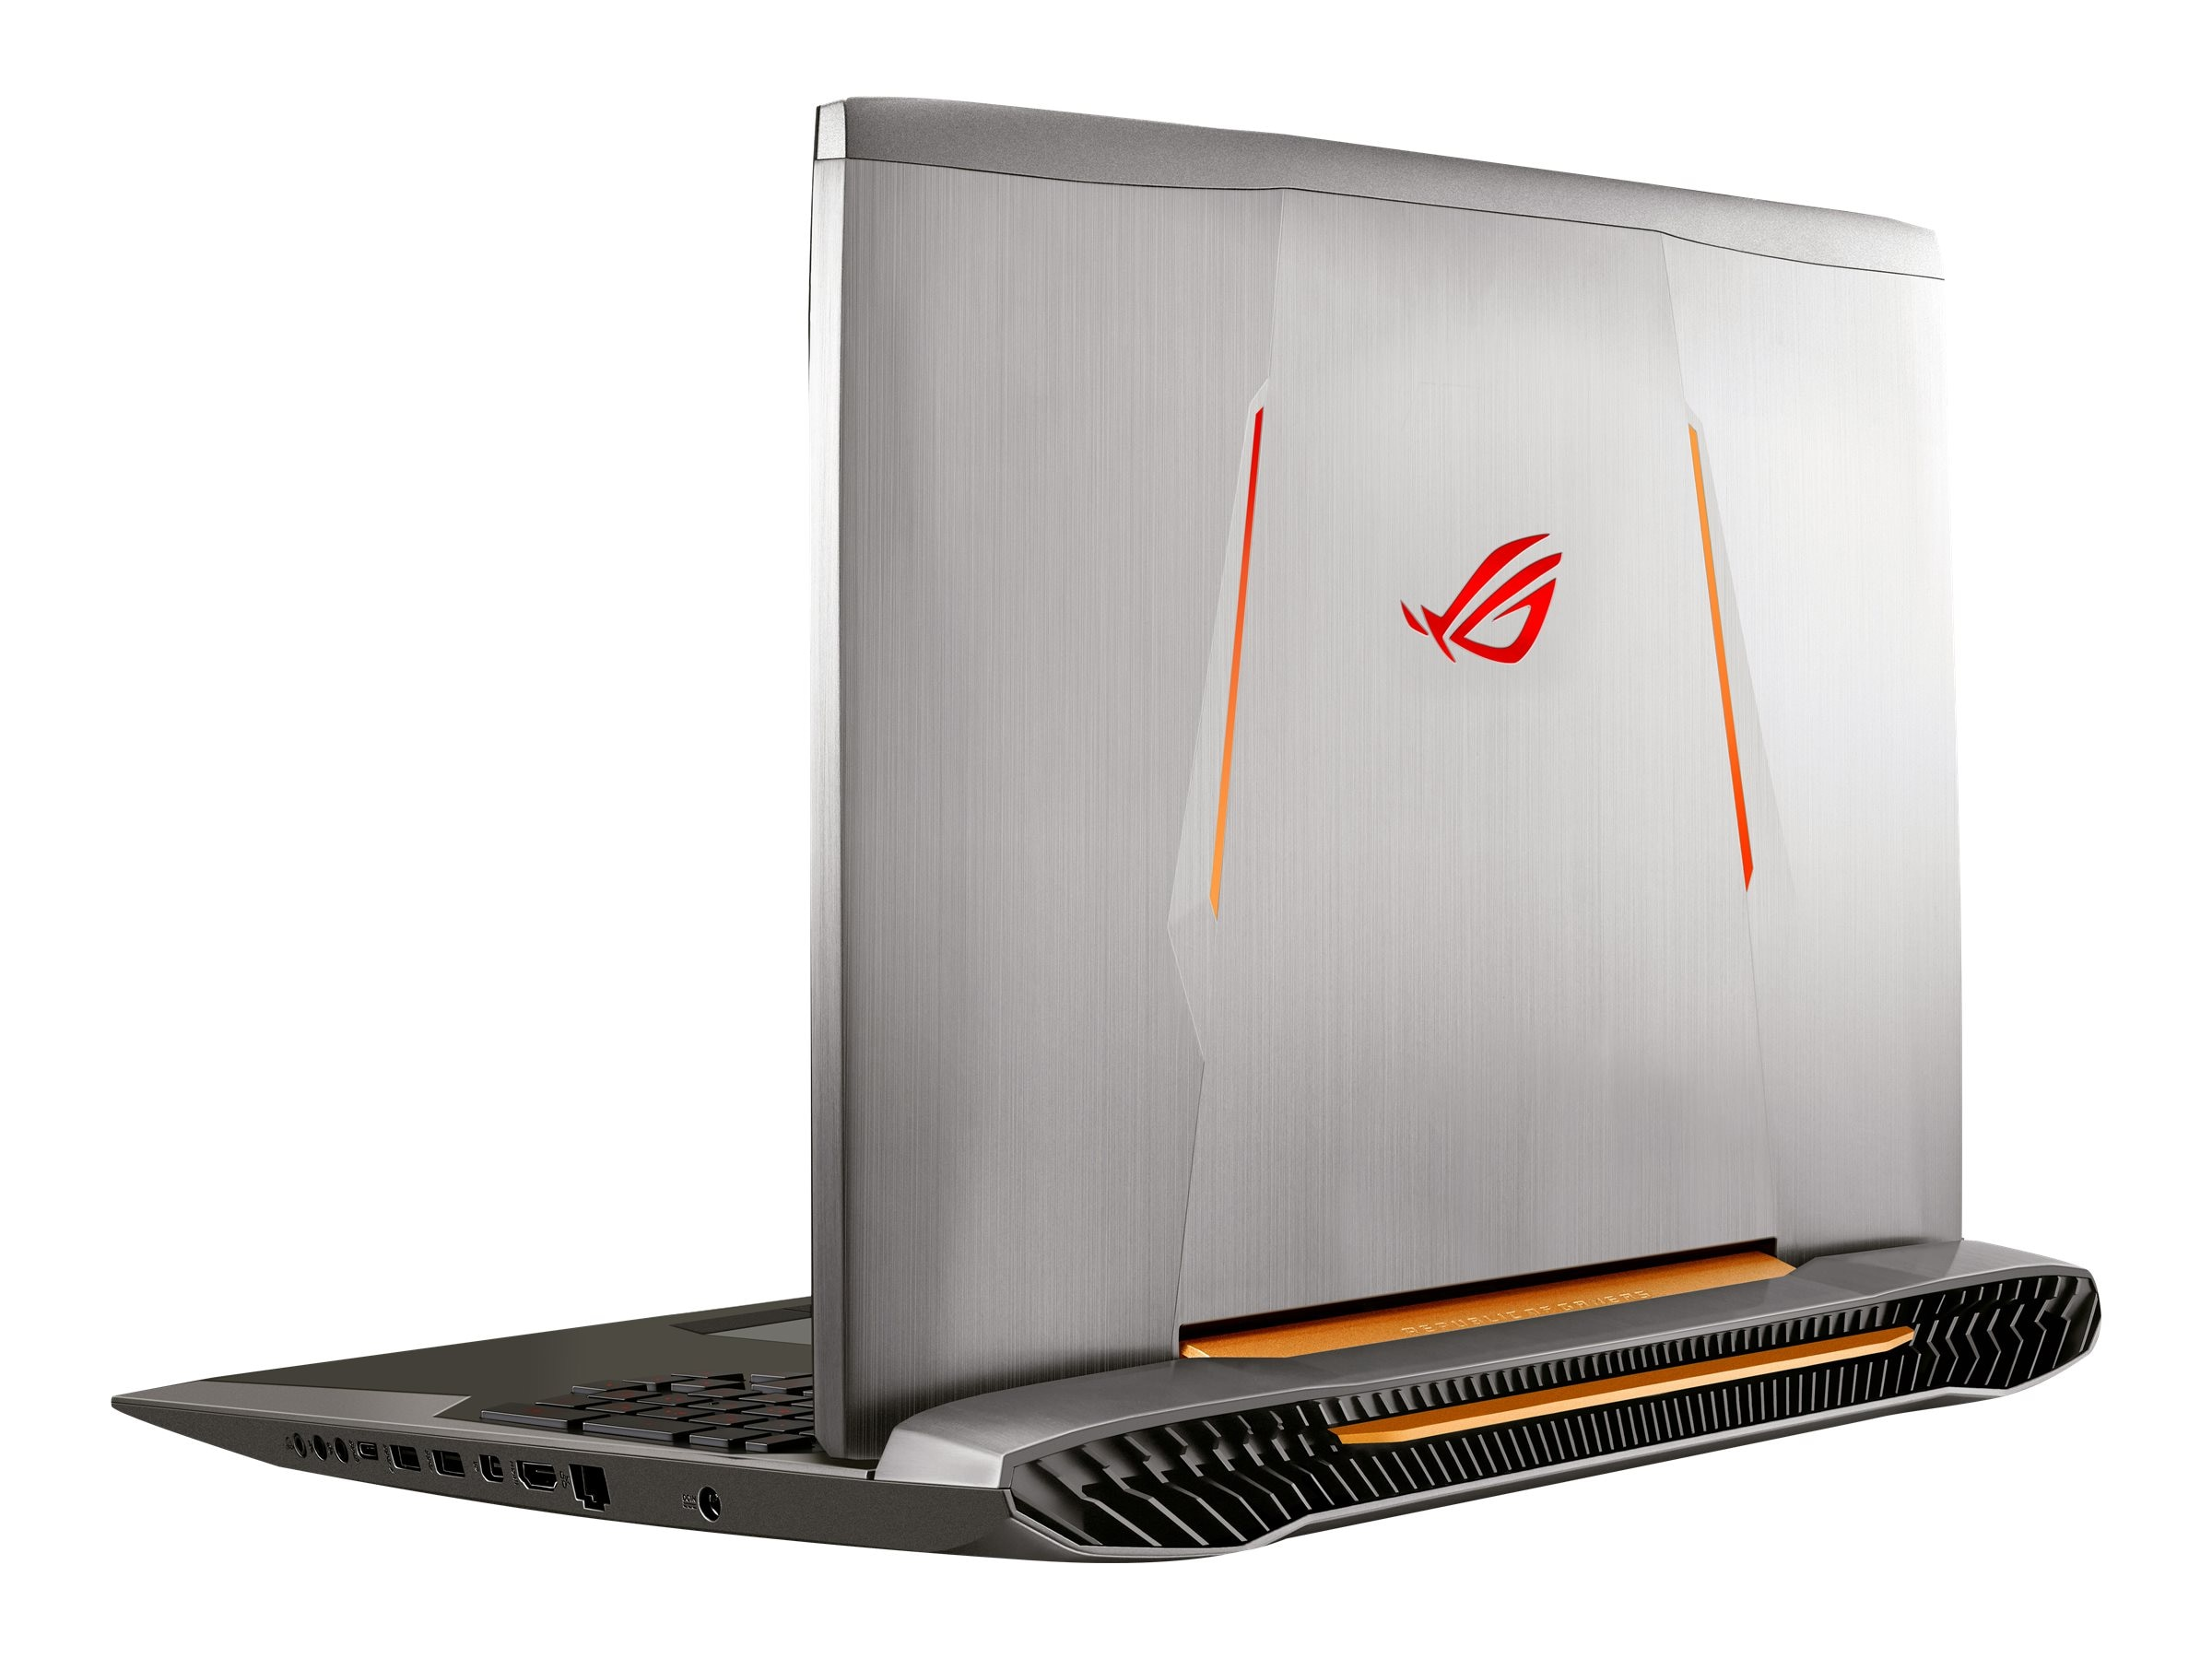 Asus G752VM-RB71 Core i7-6700 3.4GHz 16GB 1TB DVD-RW 17.3 W10, G752VM-RB71